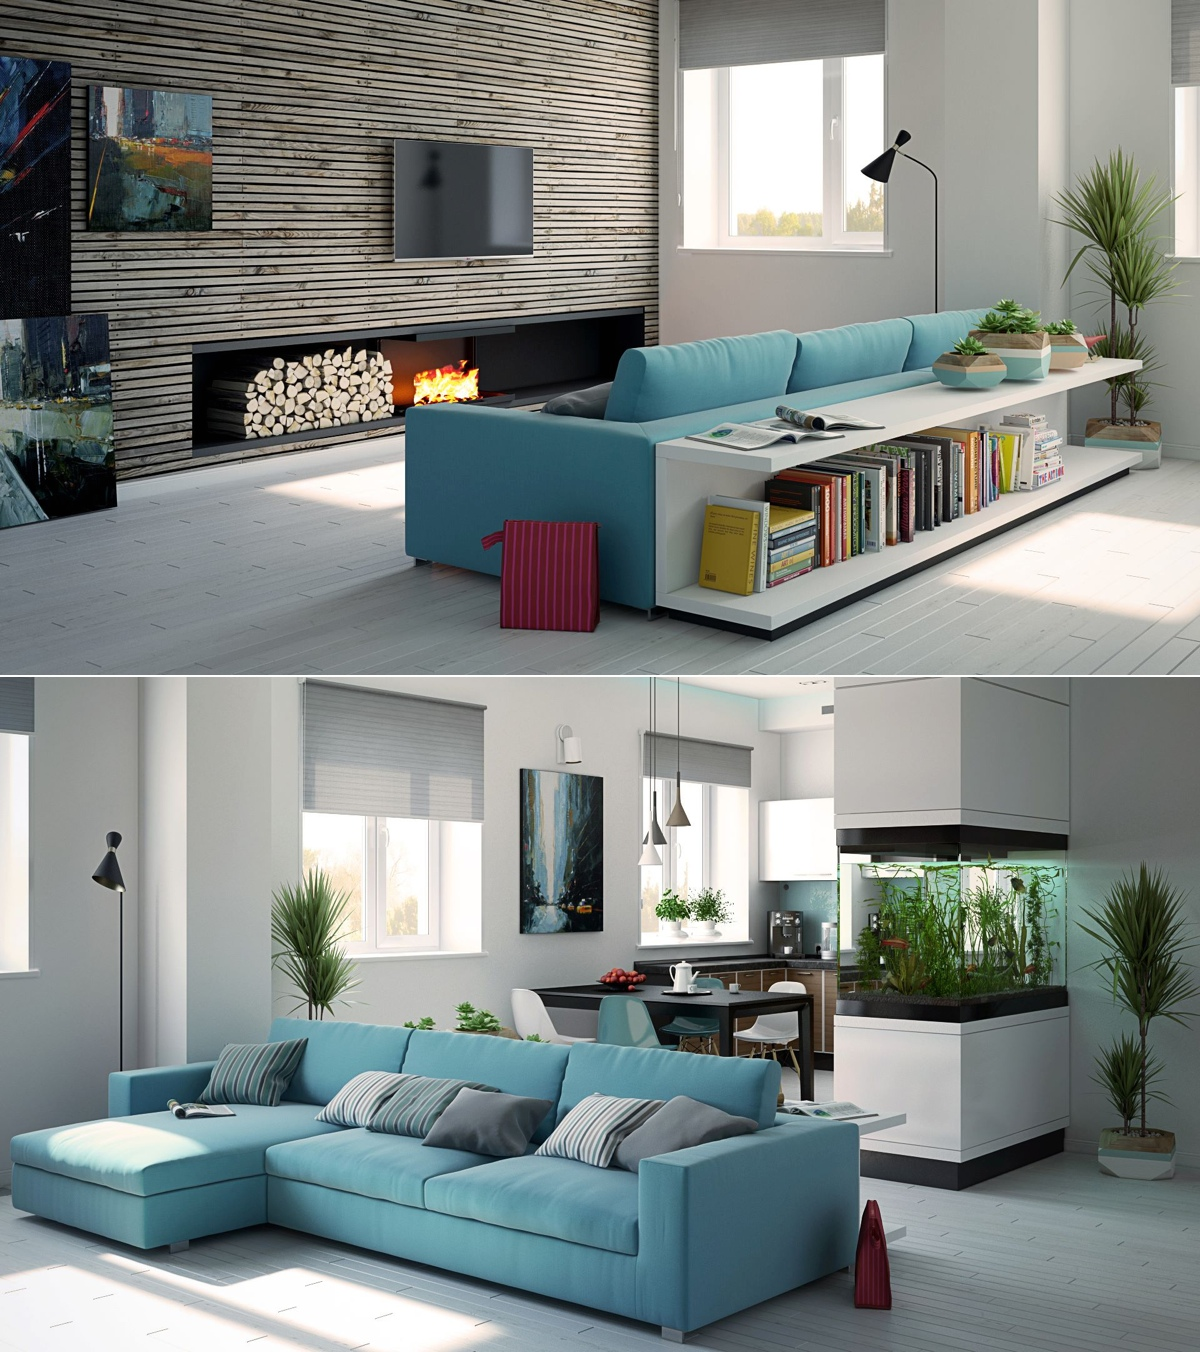 Awesomely stylish urban living rooms - Sofa azul turquesa ...